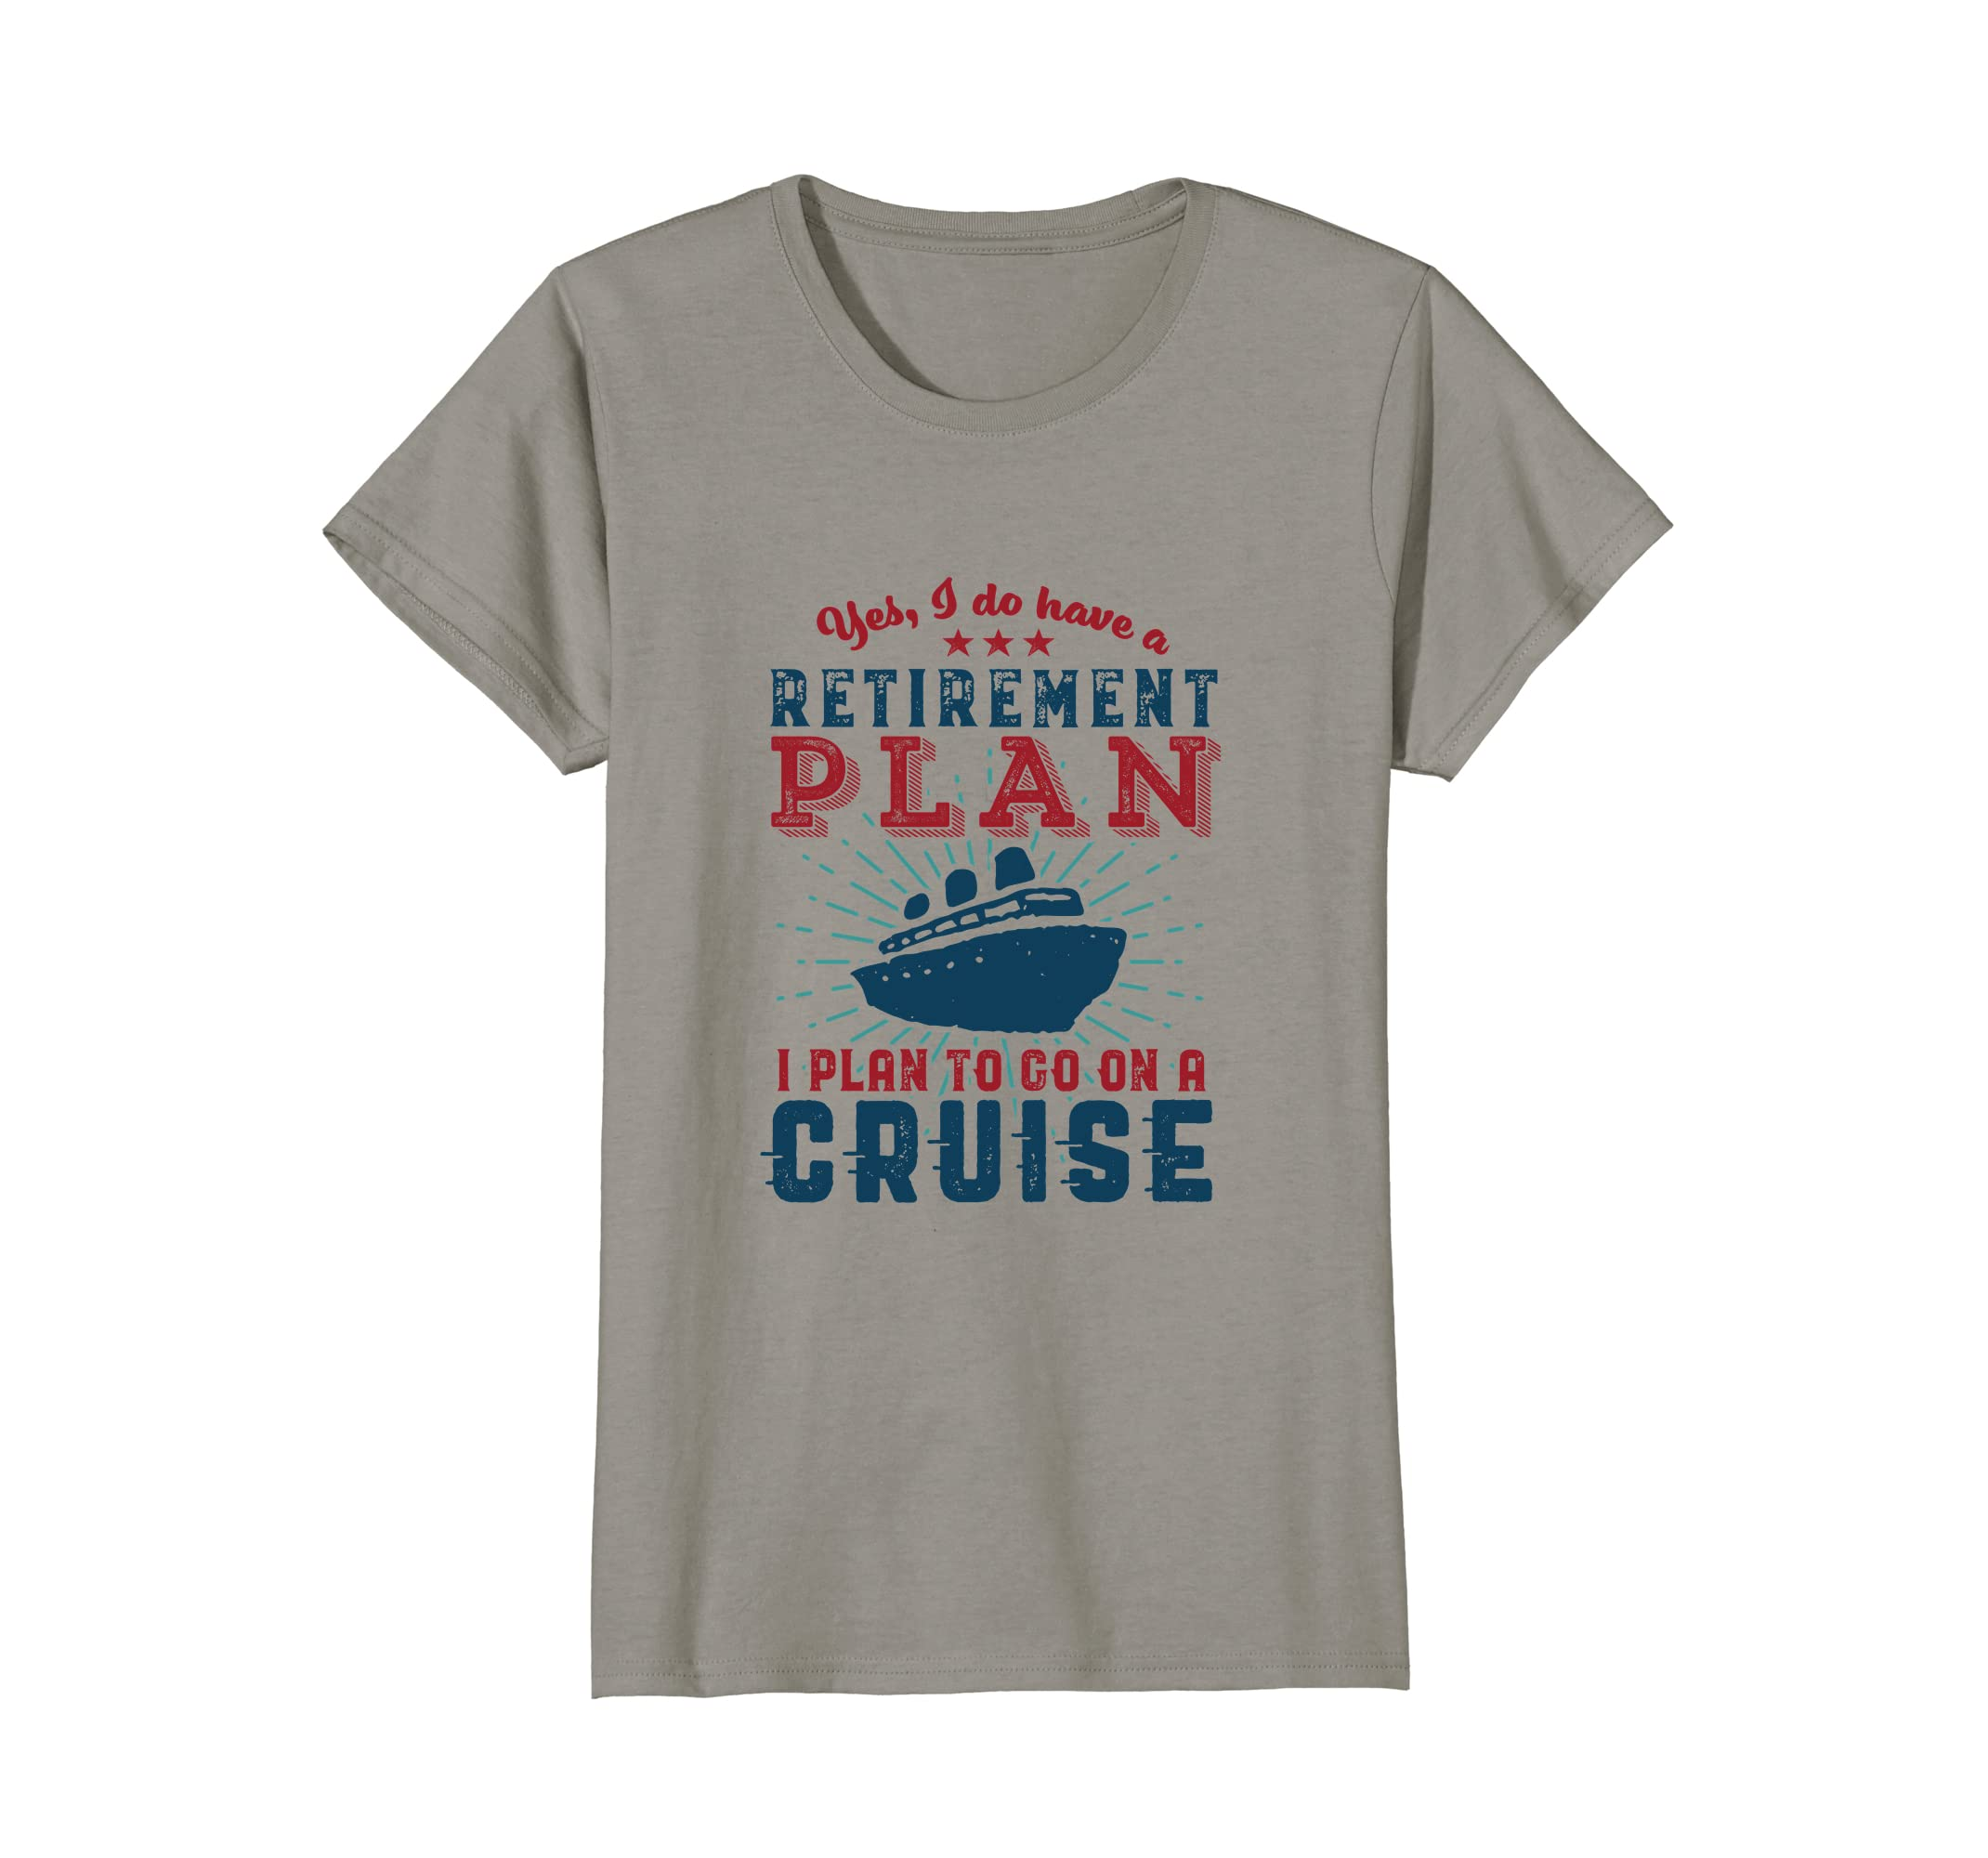 c355d4b7 Amazon.com: Funny Retired T-shirt Retirement Plan Travel Cruise Holiday:  Clothing